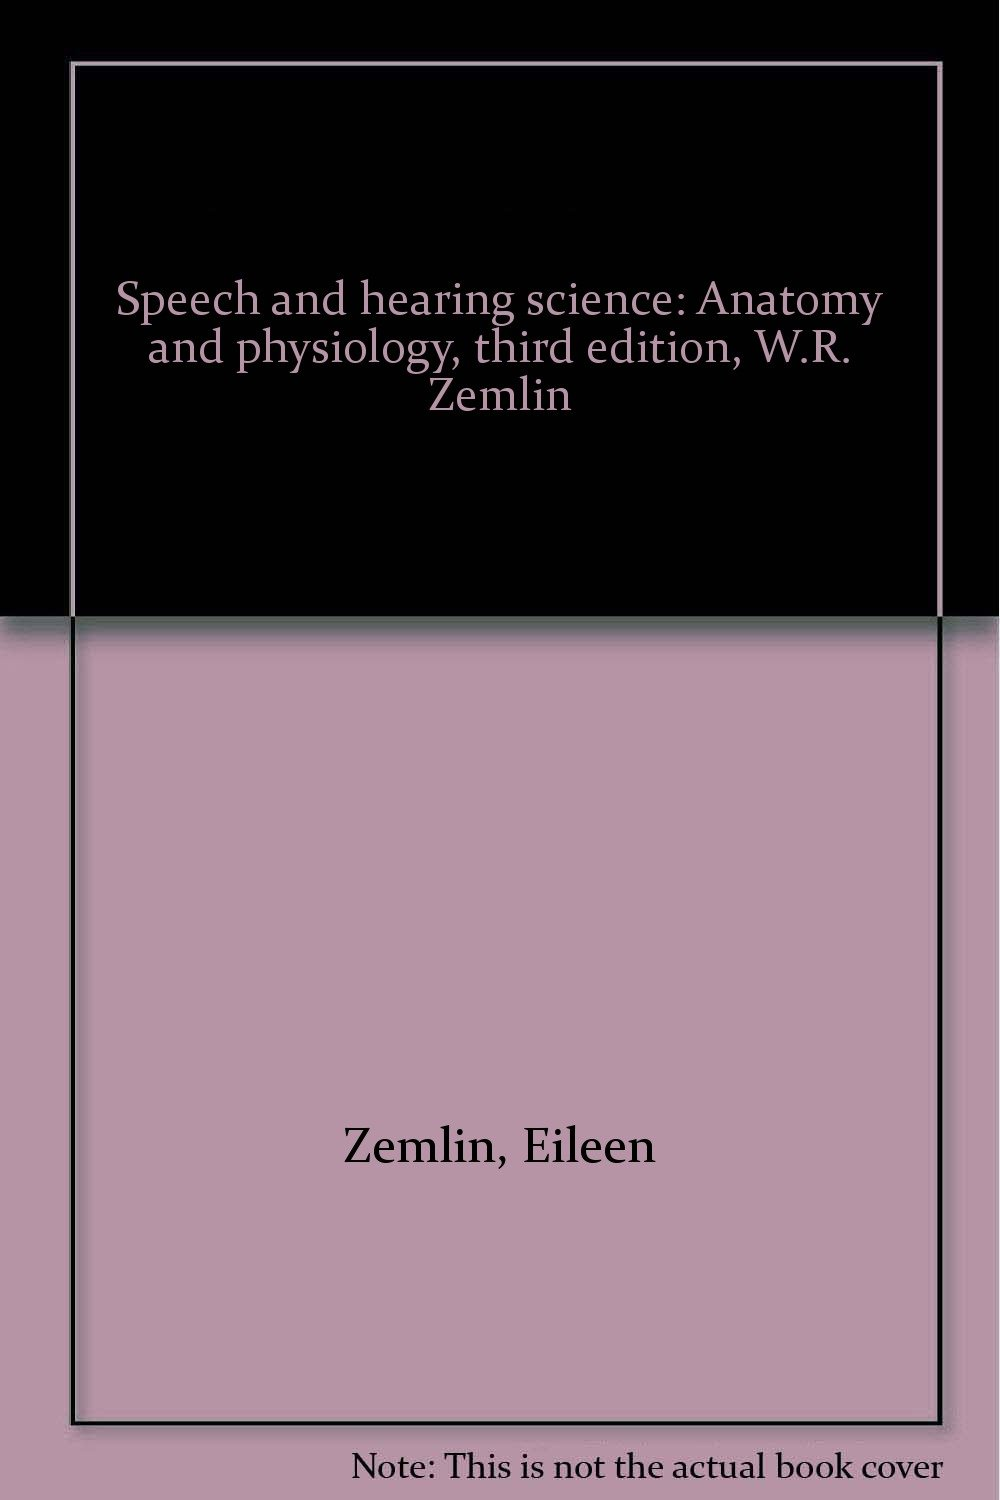 Speech and hearing science: Anatomy and physiology, third edition ...